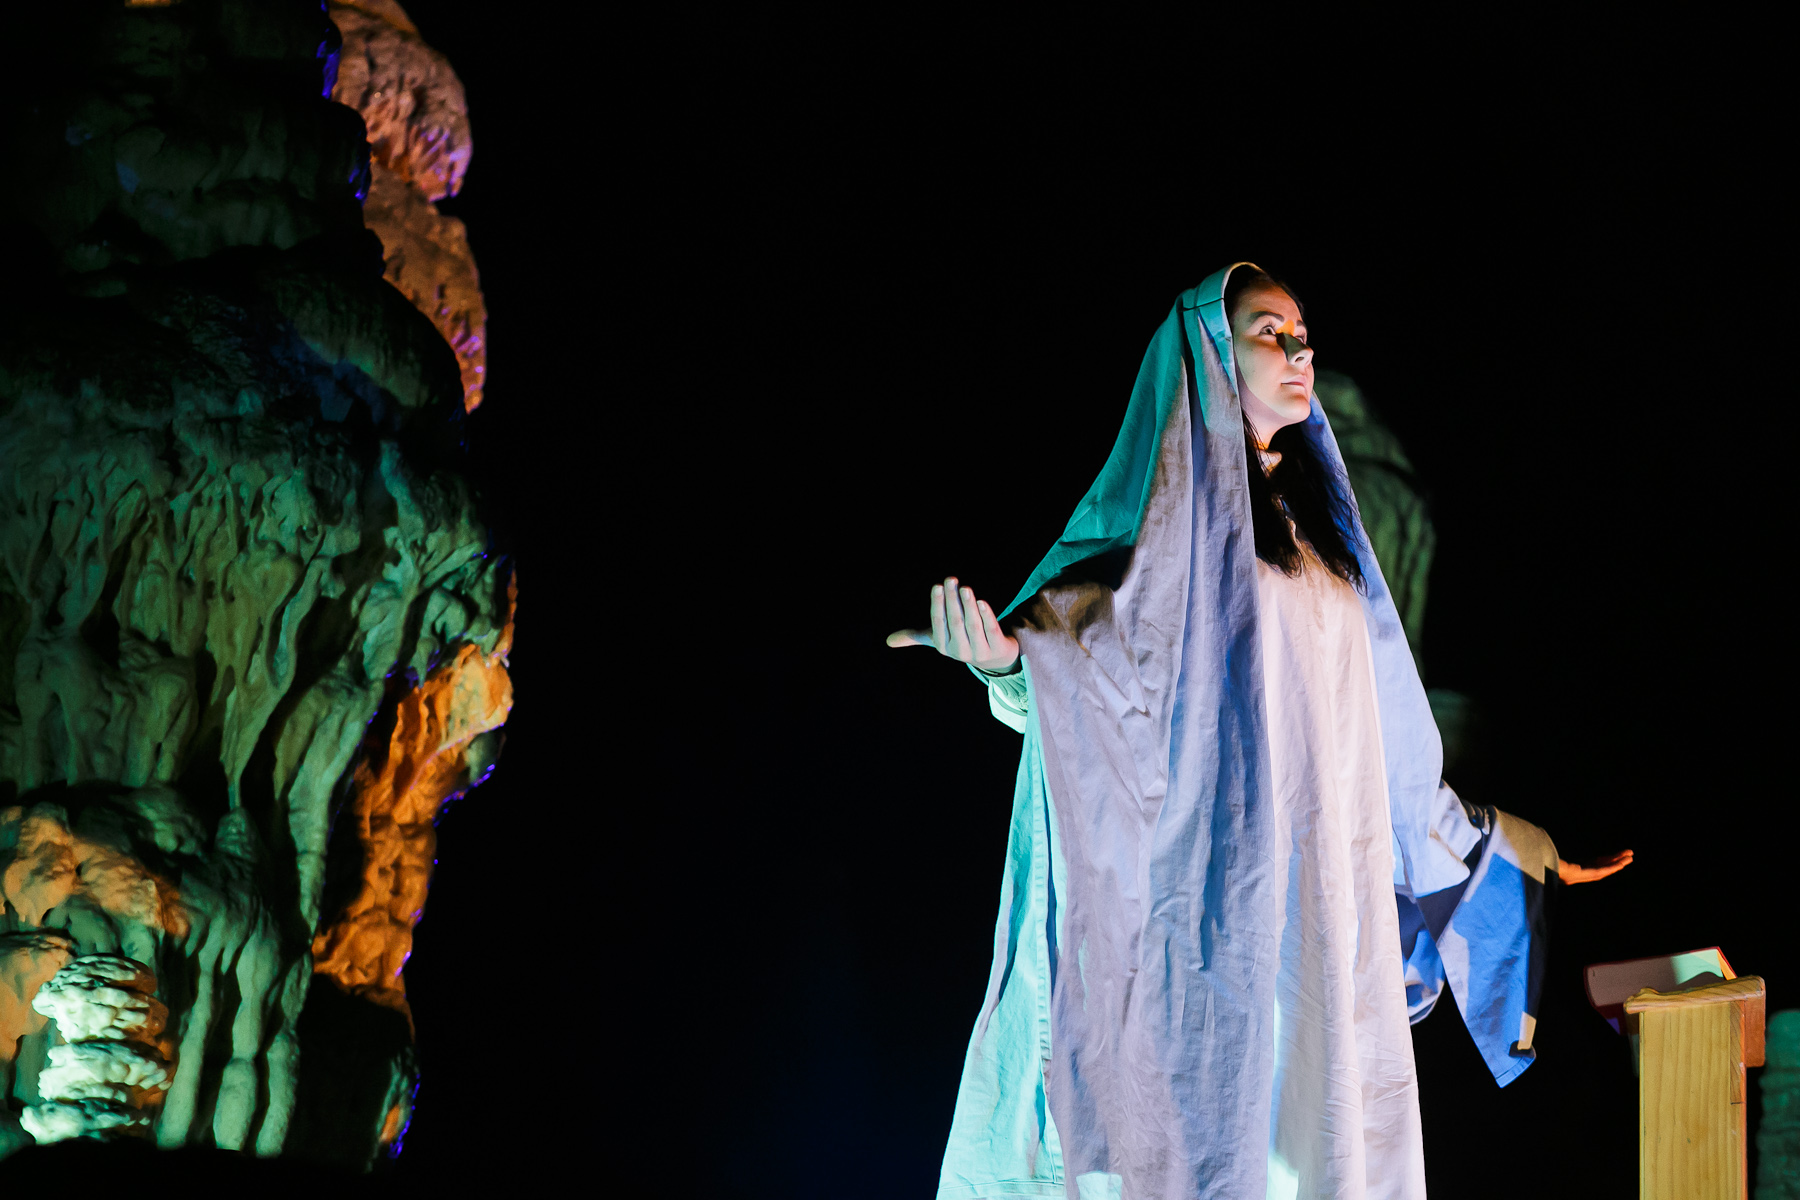 An actress playing Mary performs during the world's largest live Nativity scene in a cave, staged in the Postojna Cave in Slovenia, Dec. 25, 2015.